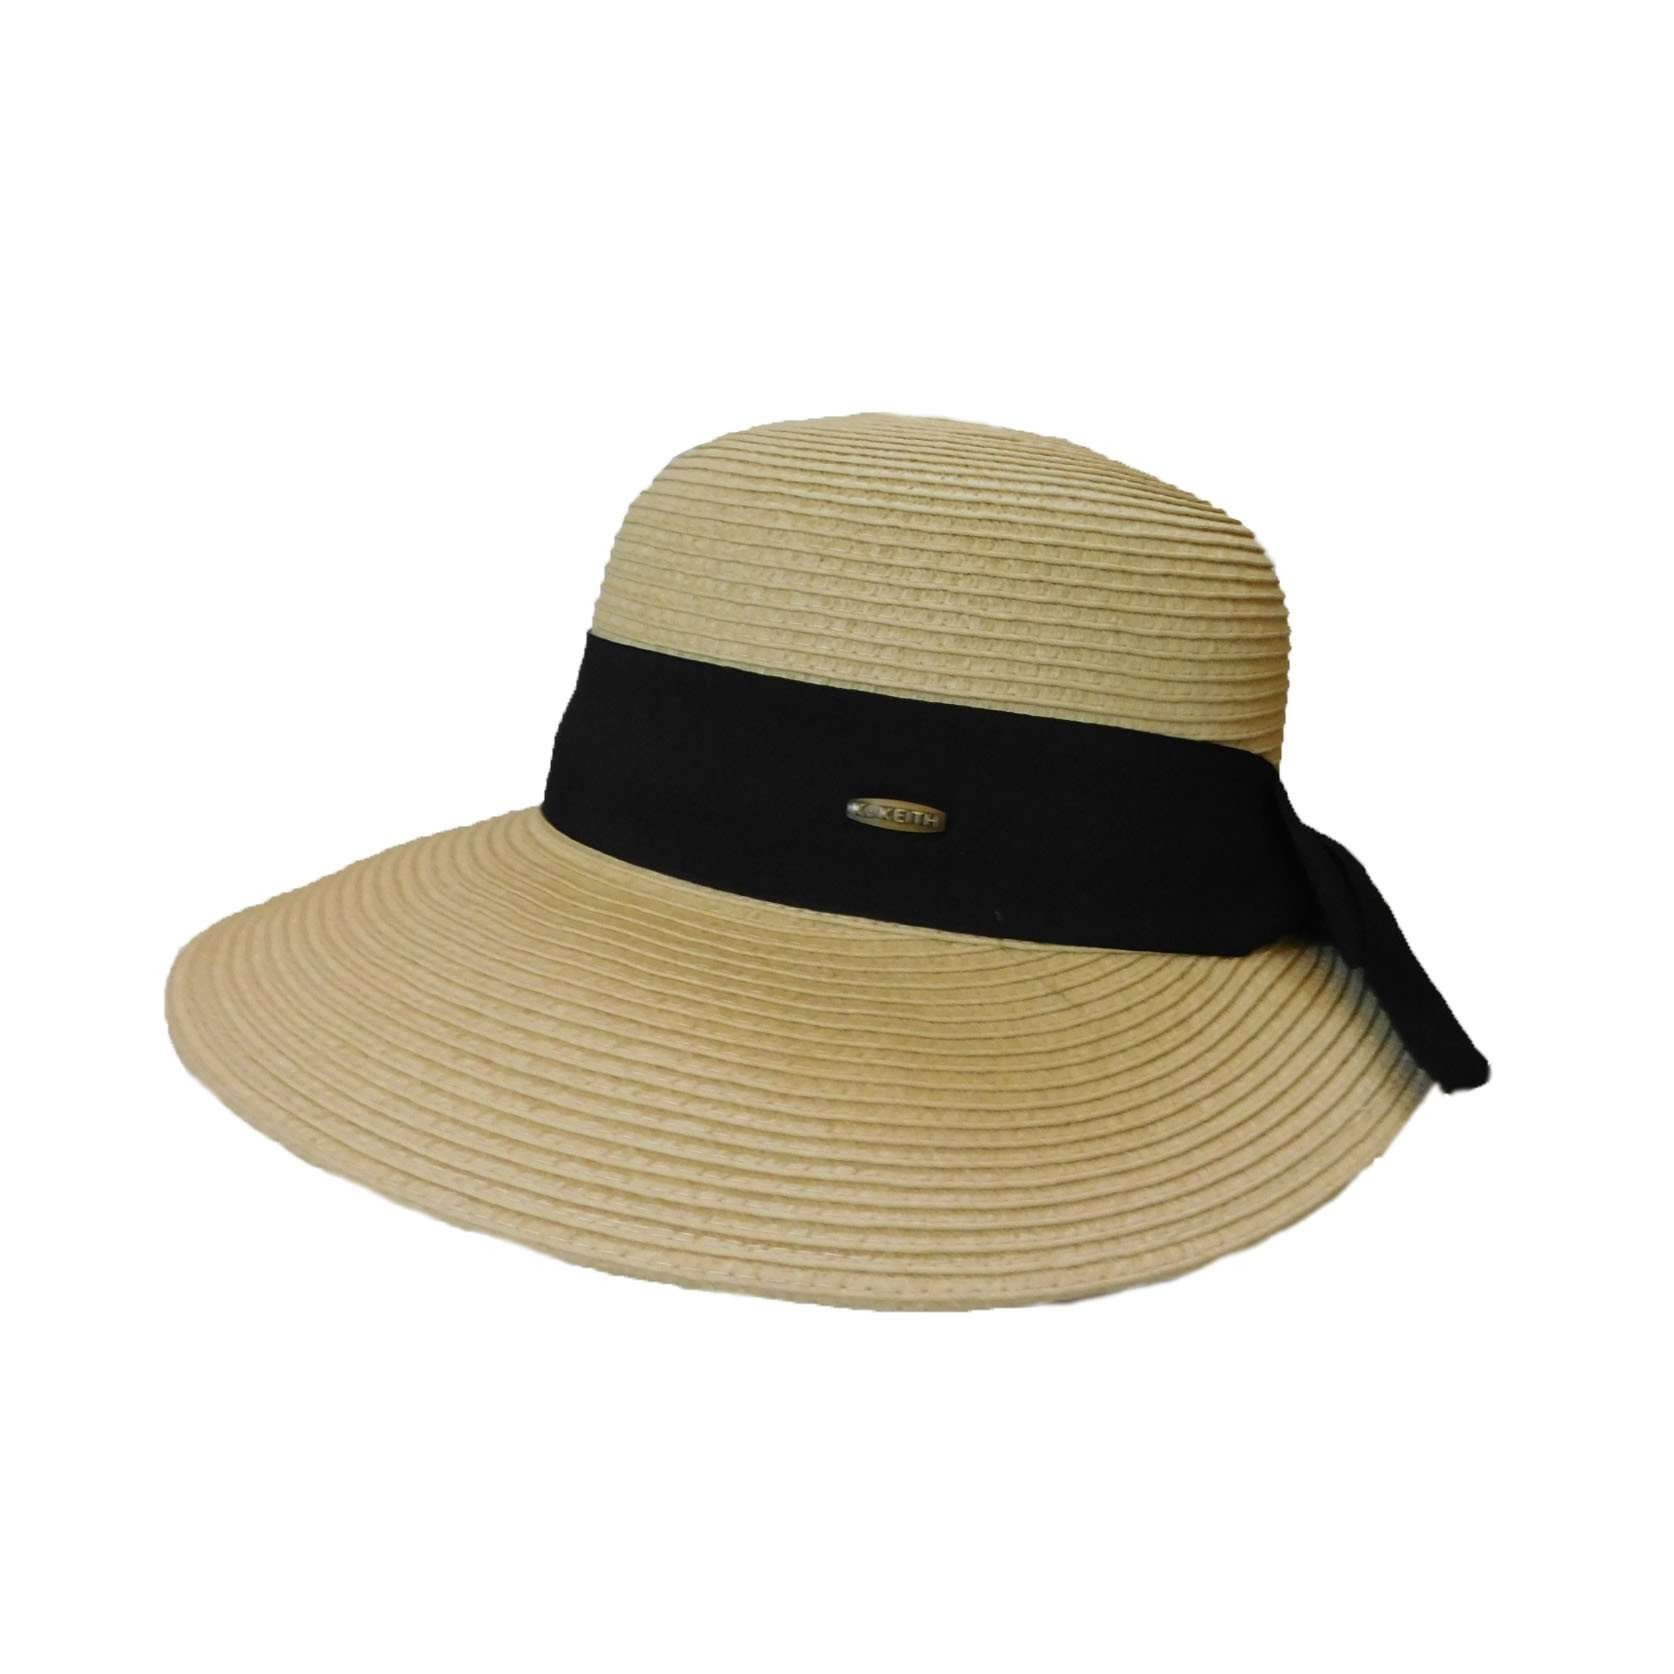 aa1662eb433 Sun Hat with Narrowing Brim by Karen Keith -Sun Protective Womens Hats